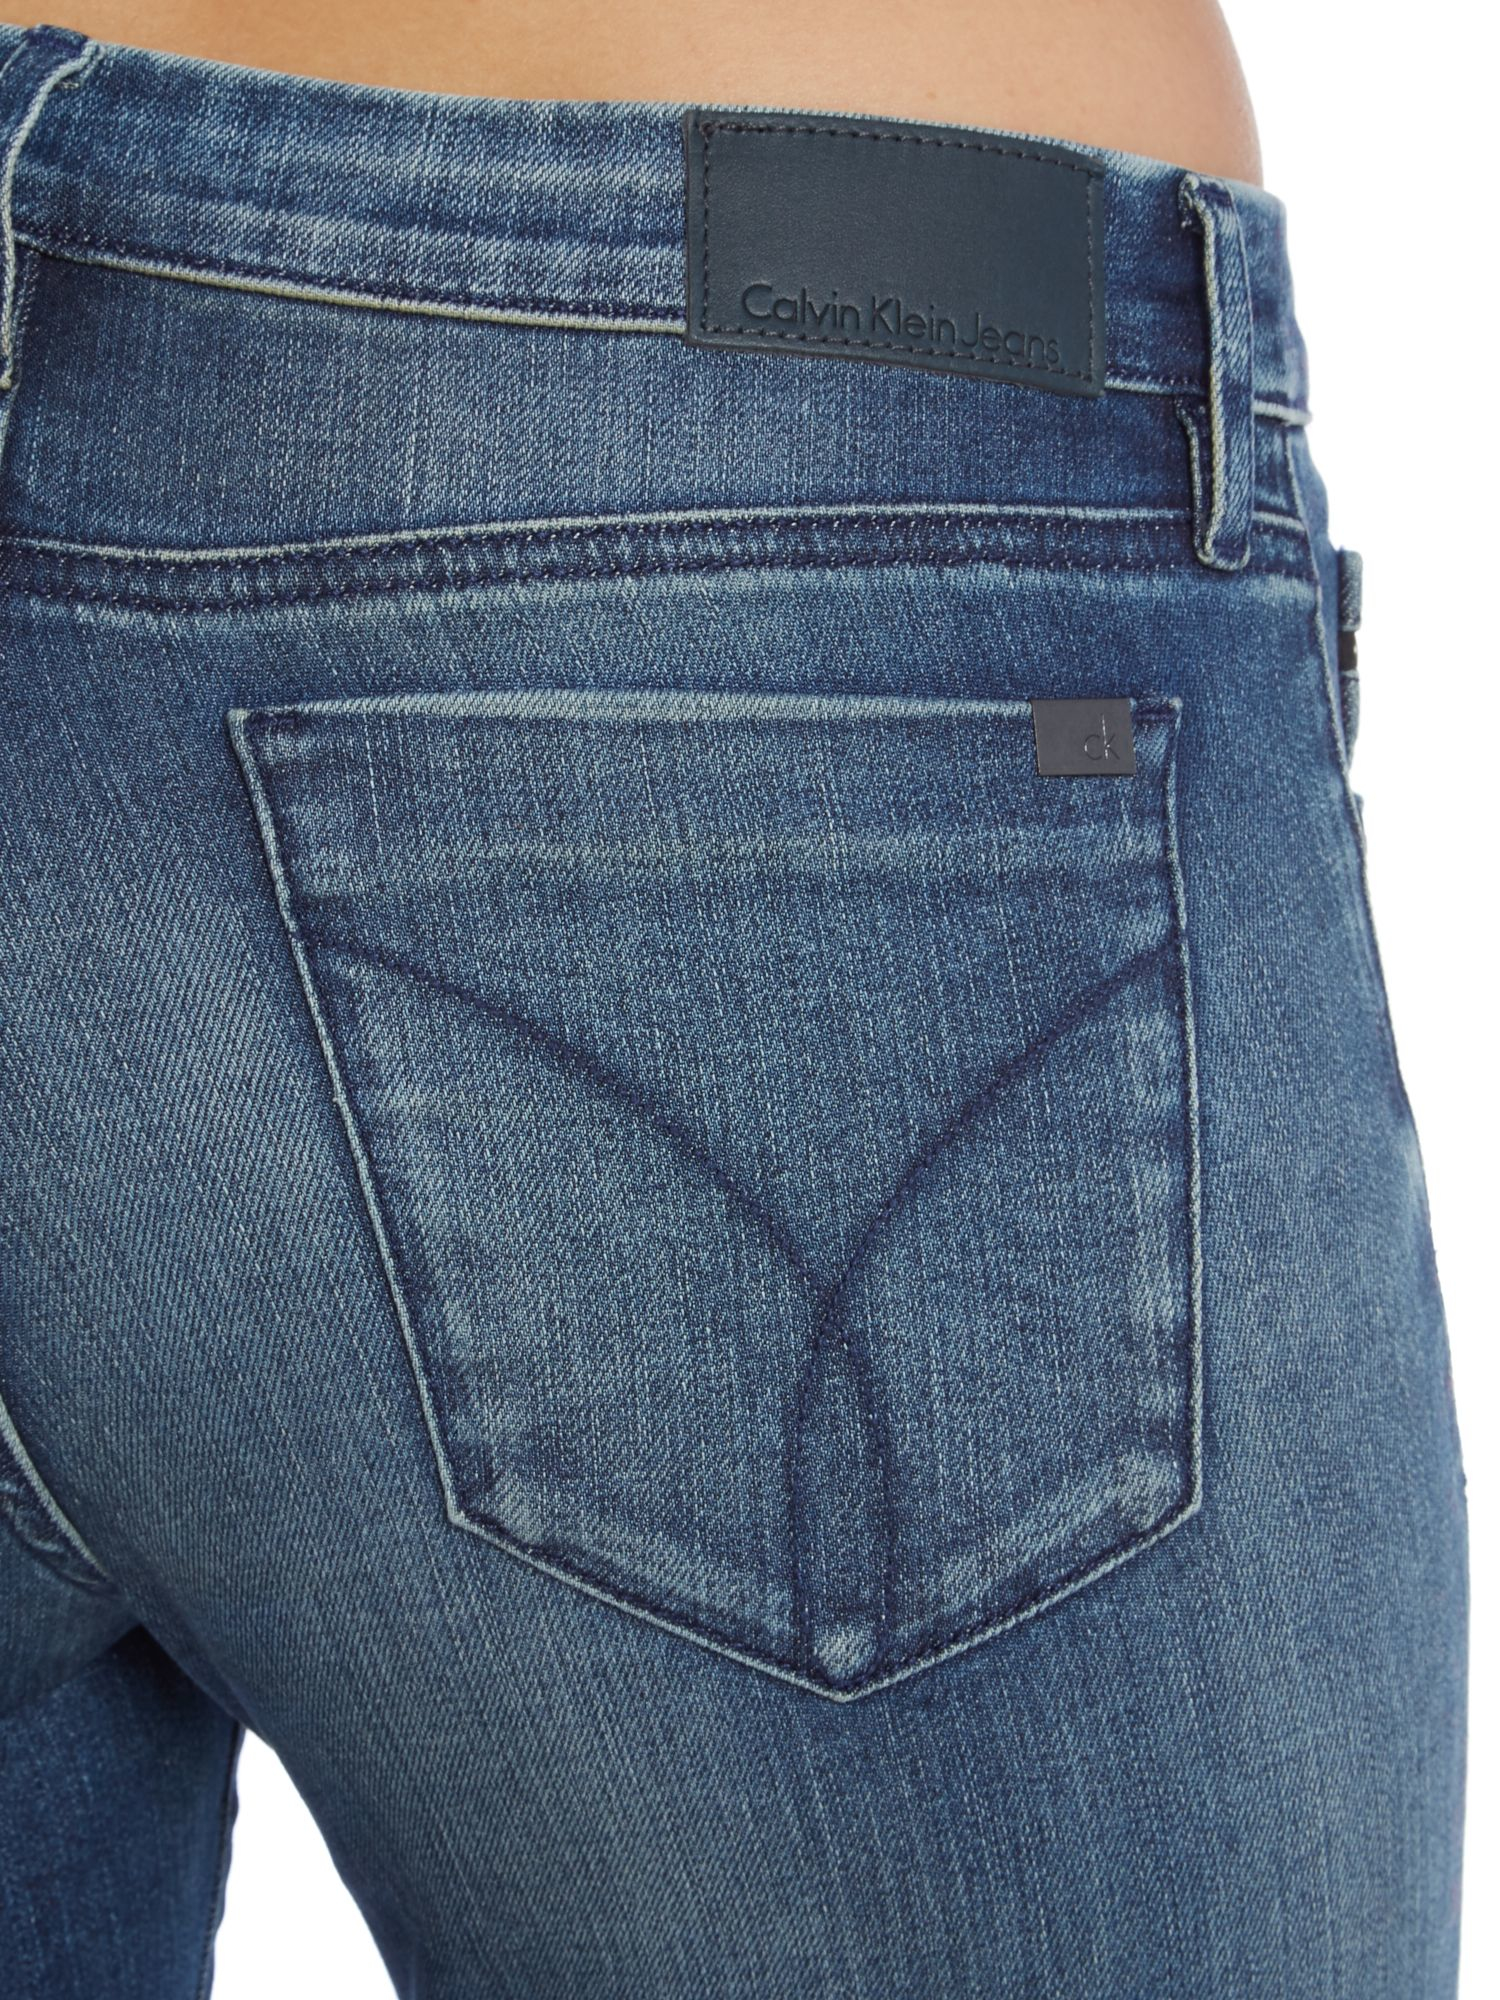 Calvin klein jeans mid rise skinny jeans